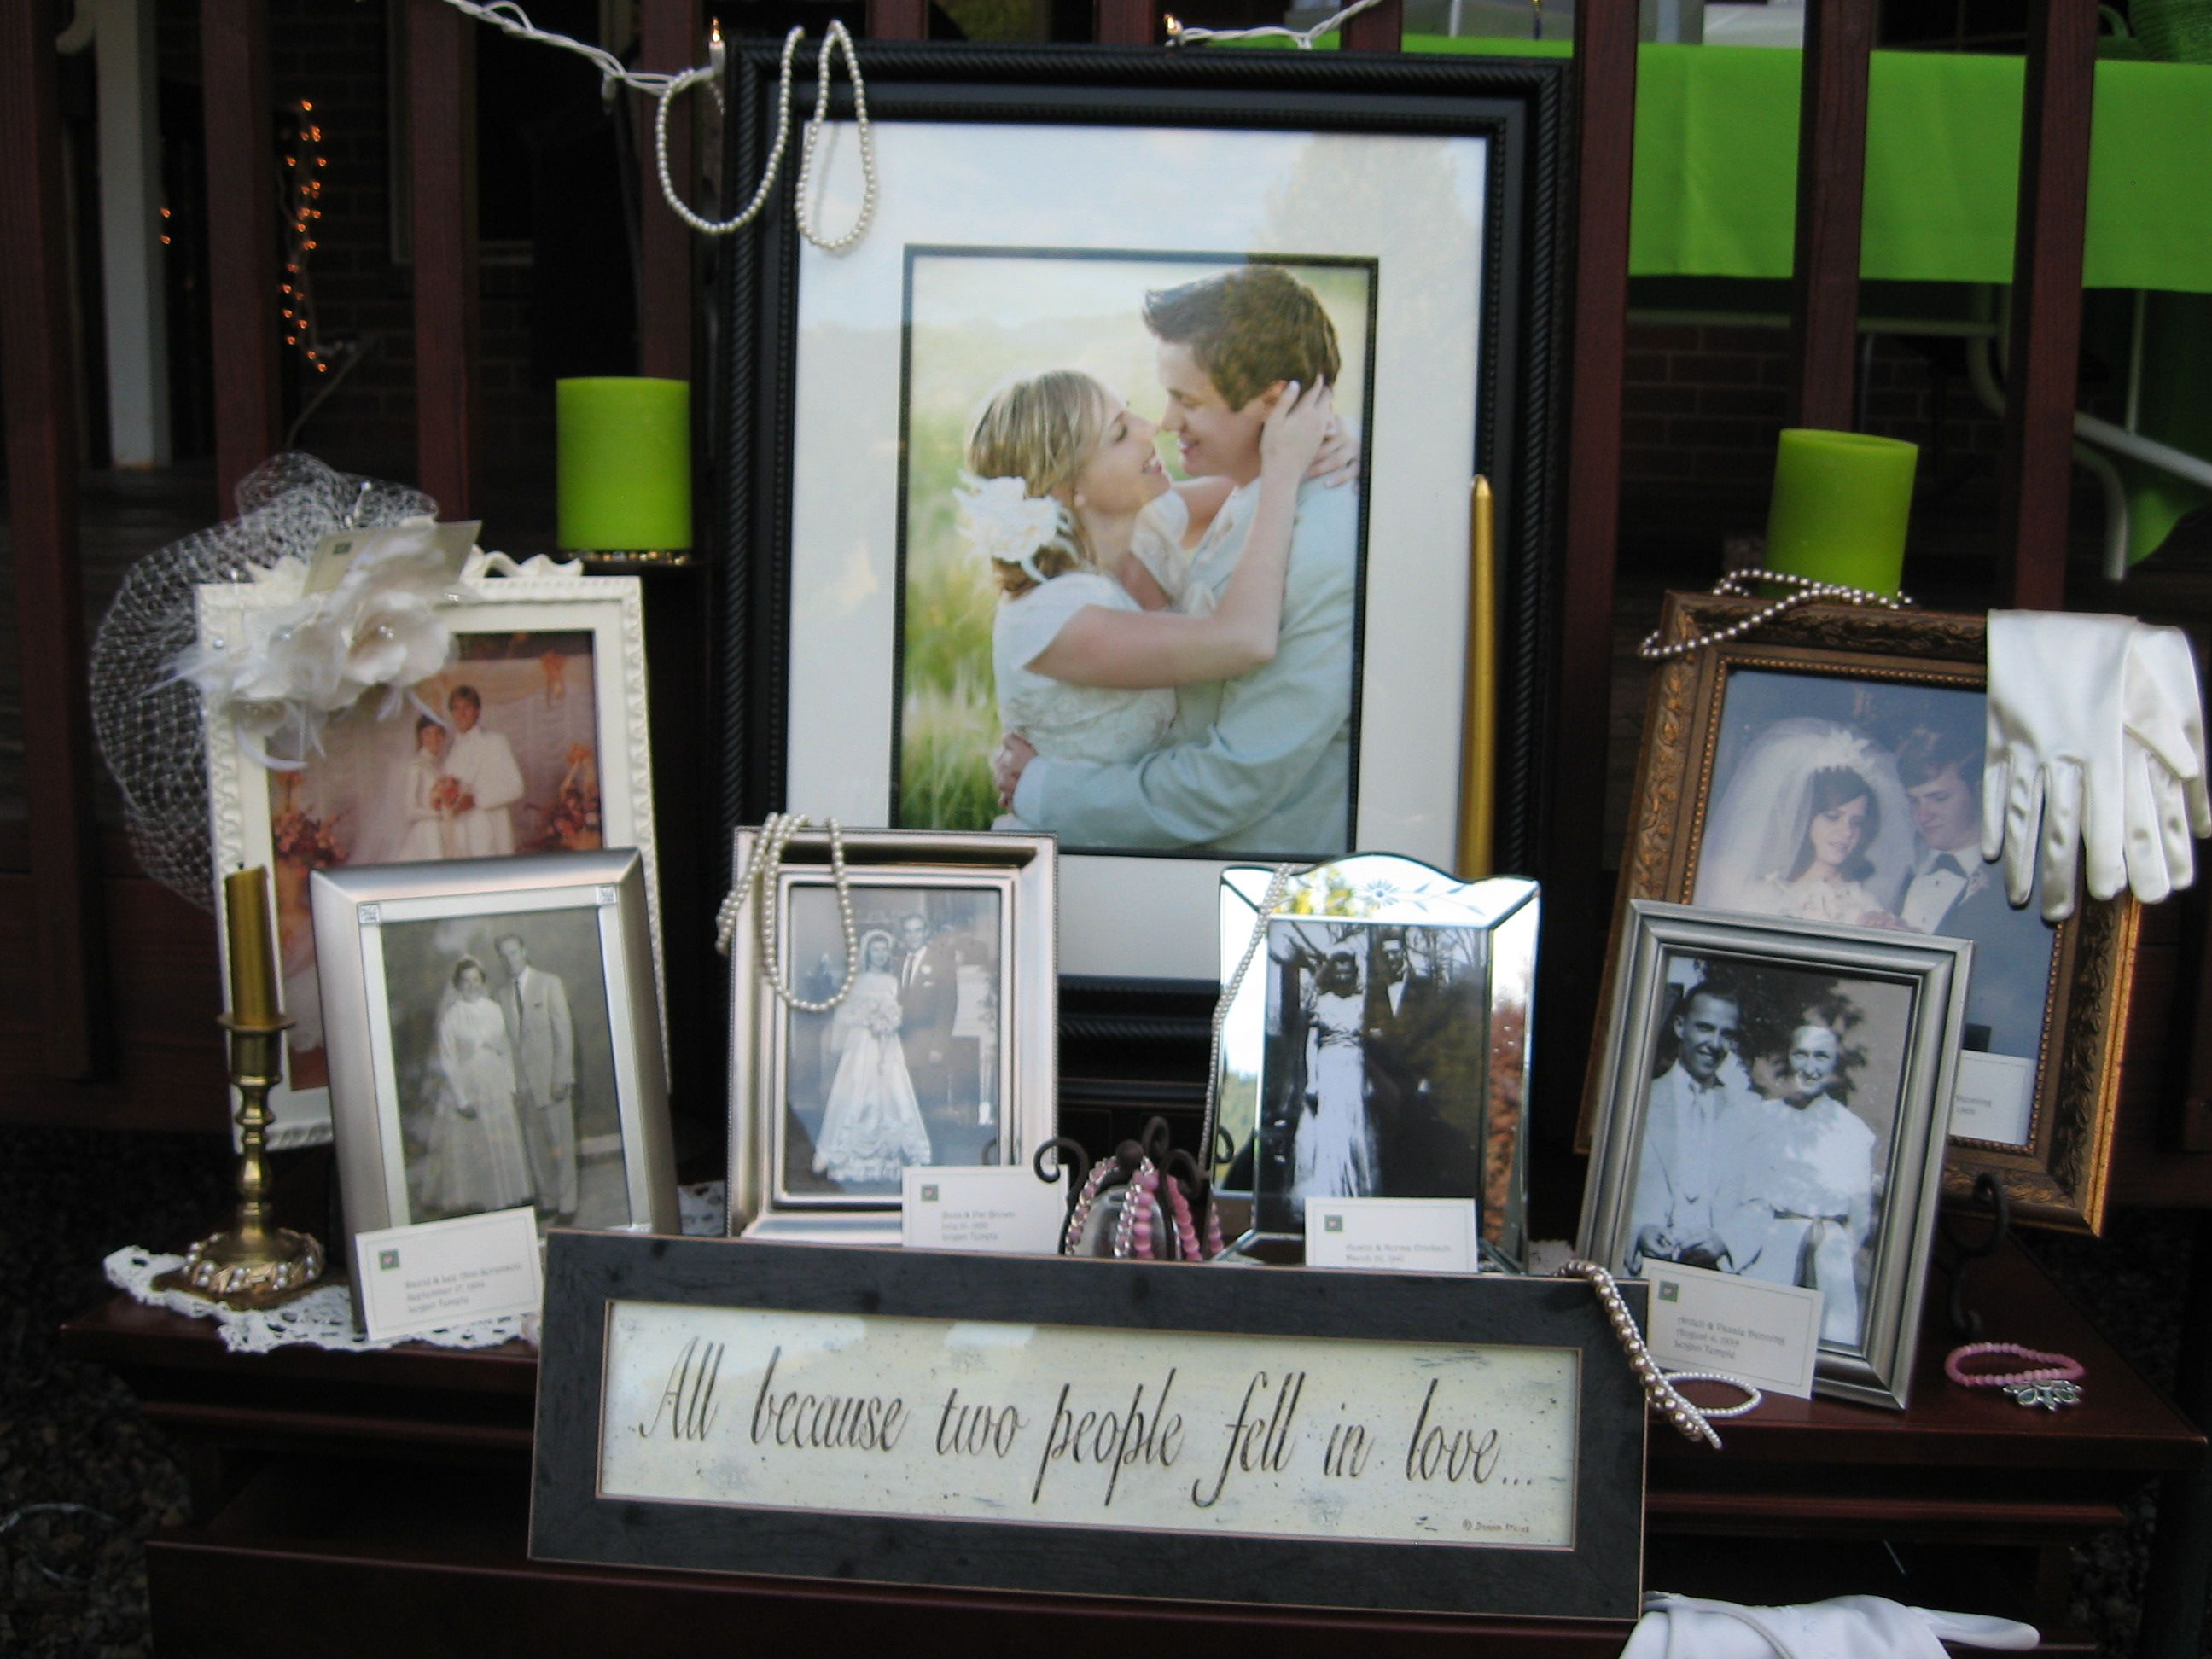 i love this idea of having wedding photos of your family displayed